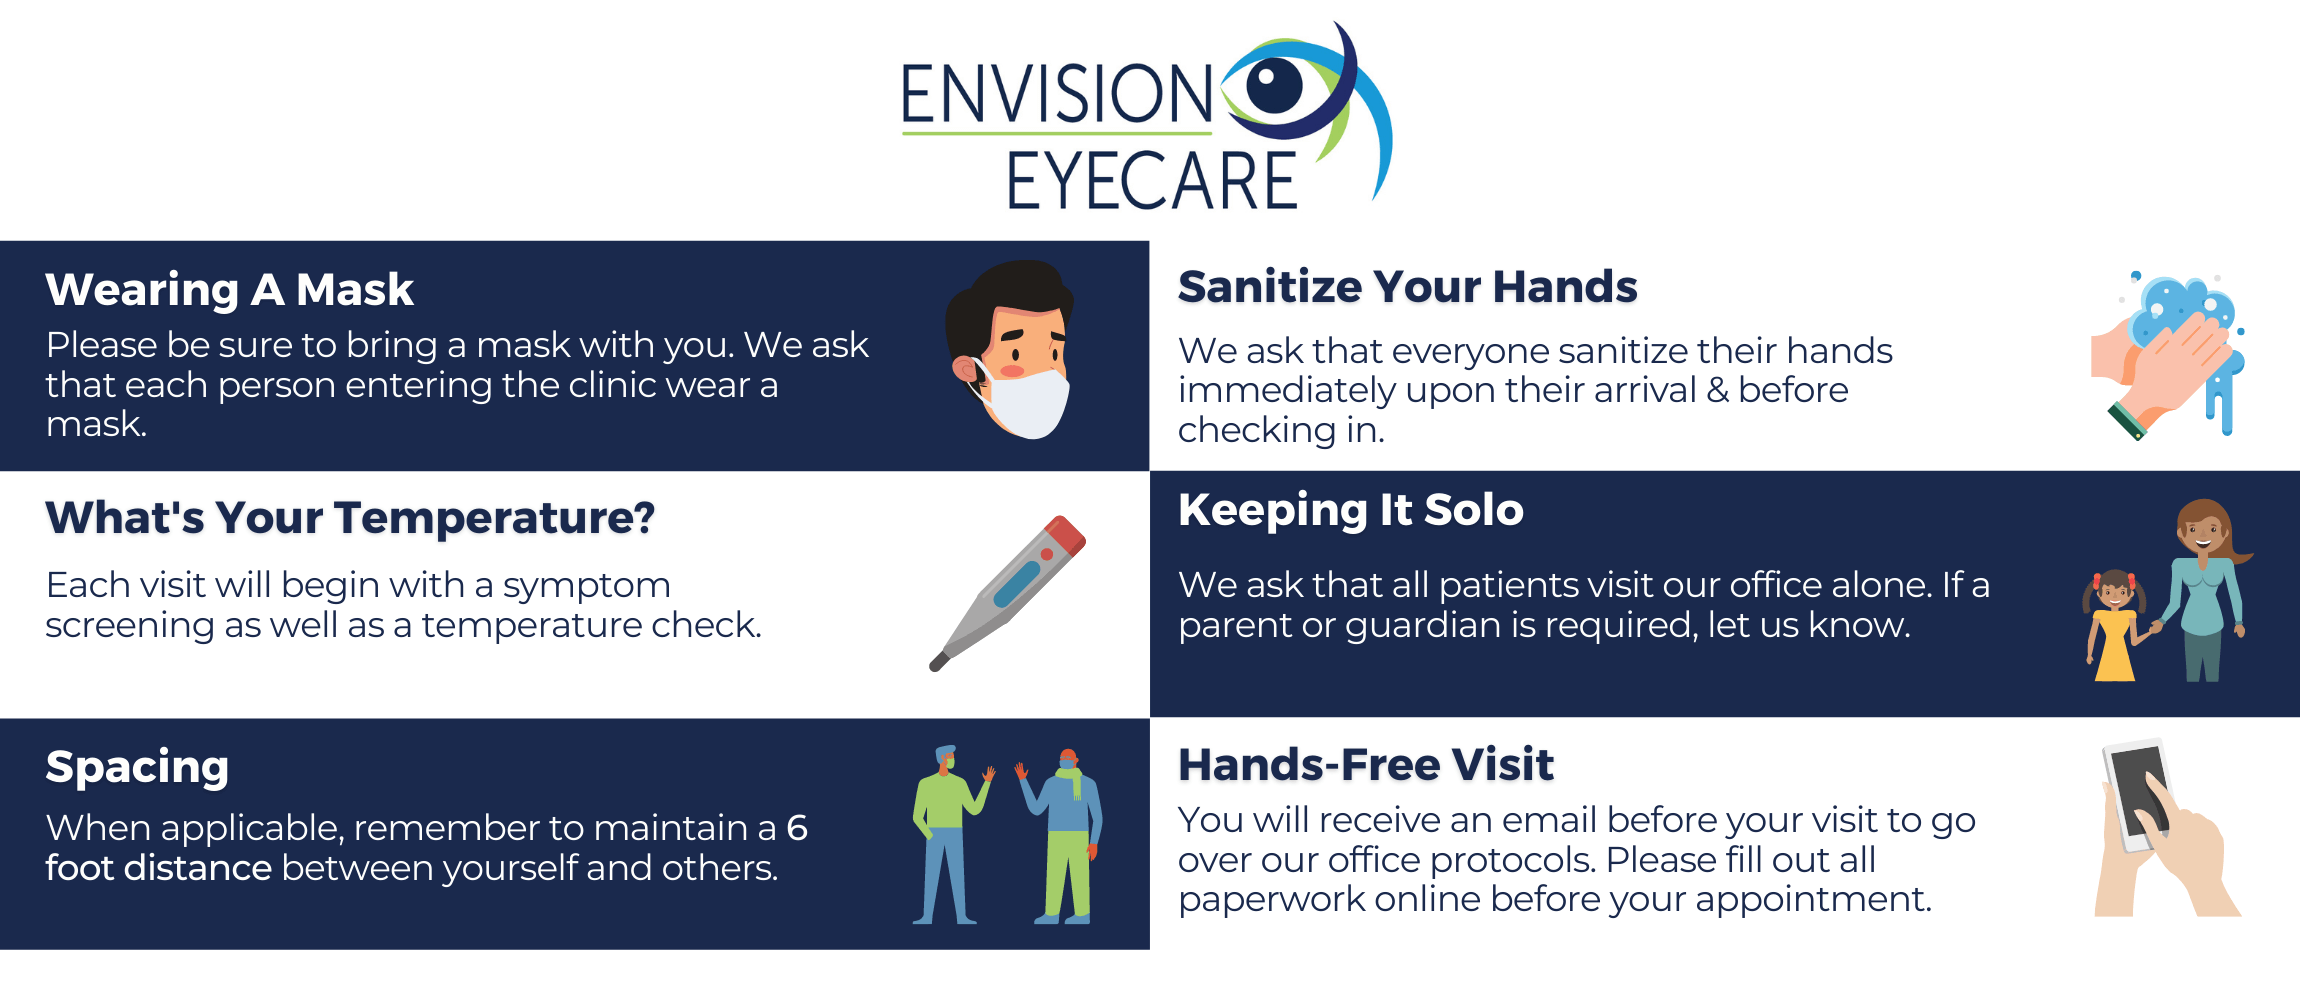 Copy-of-Copy-of-Copy-of-Envision-Eyecare-_-COVID-Web-slider.png